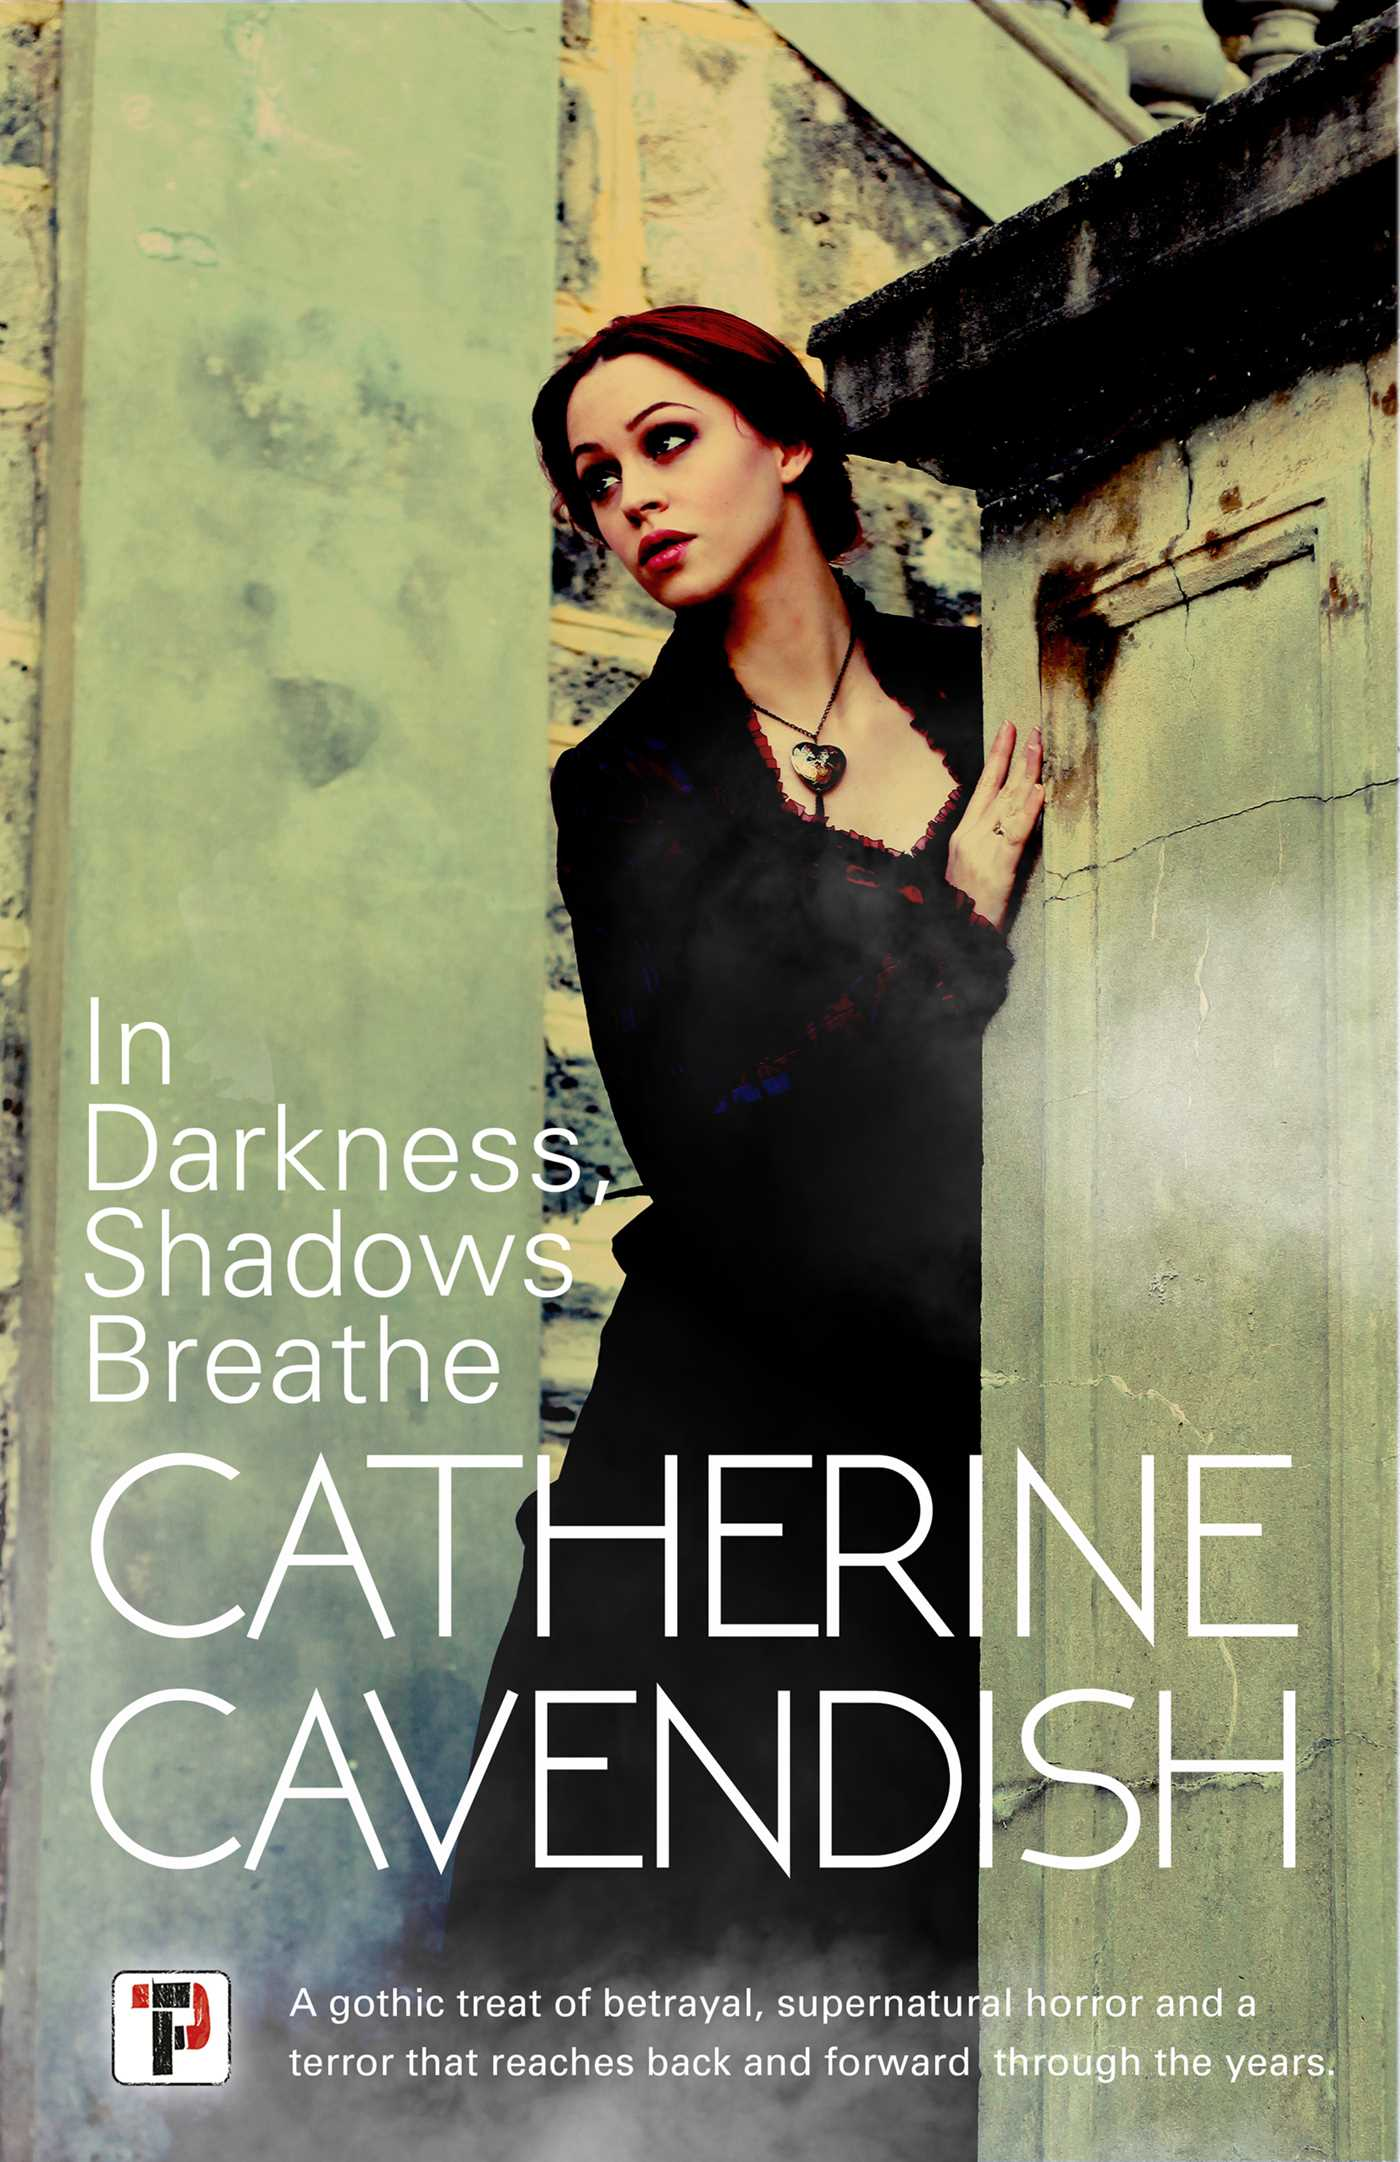 In Darkness, Shadows Breathe by Catherine Cavendish